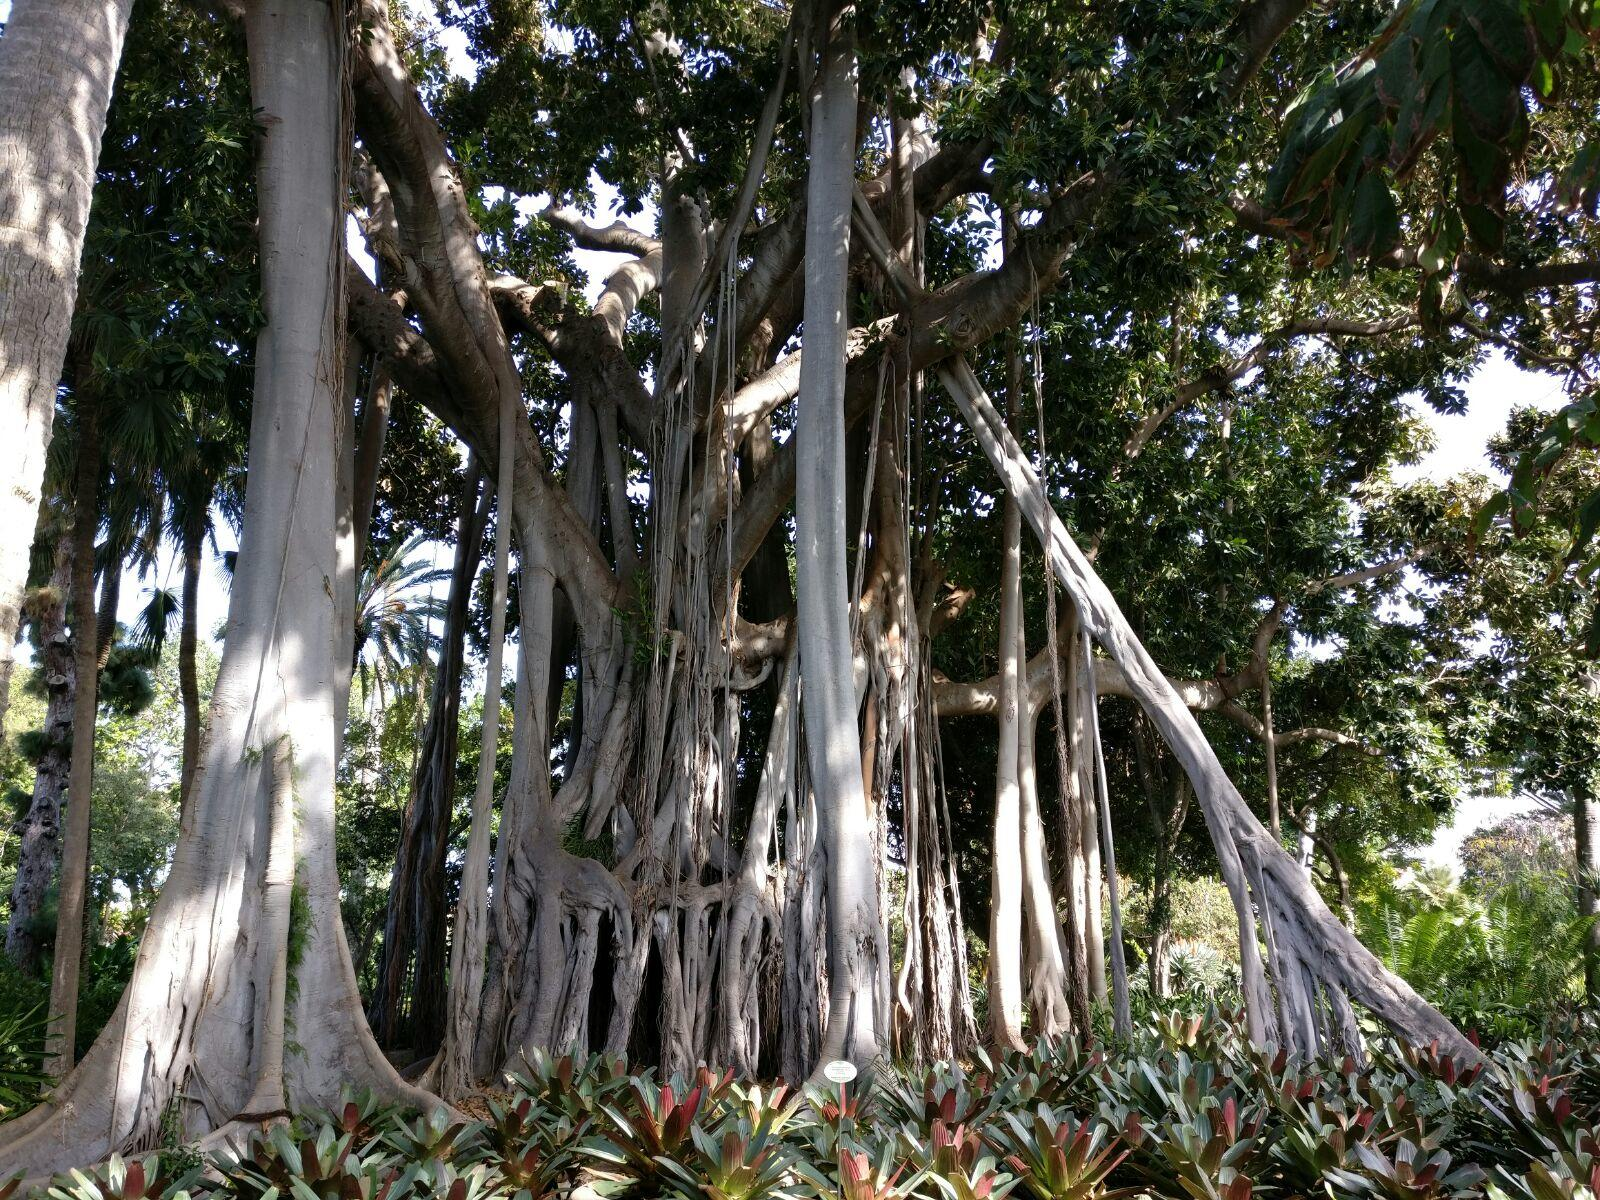 The strangler fig is growing more and more.